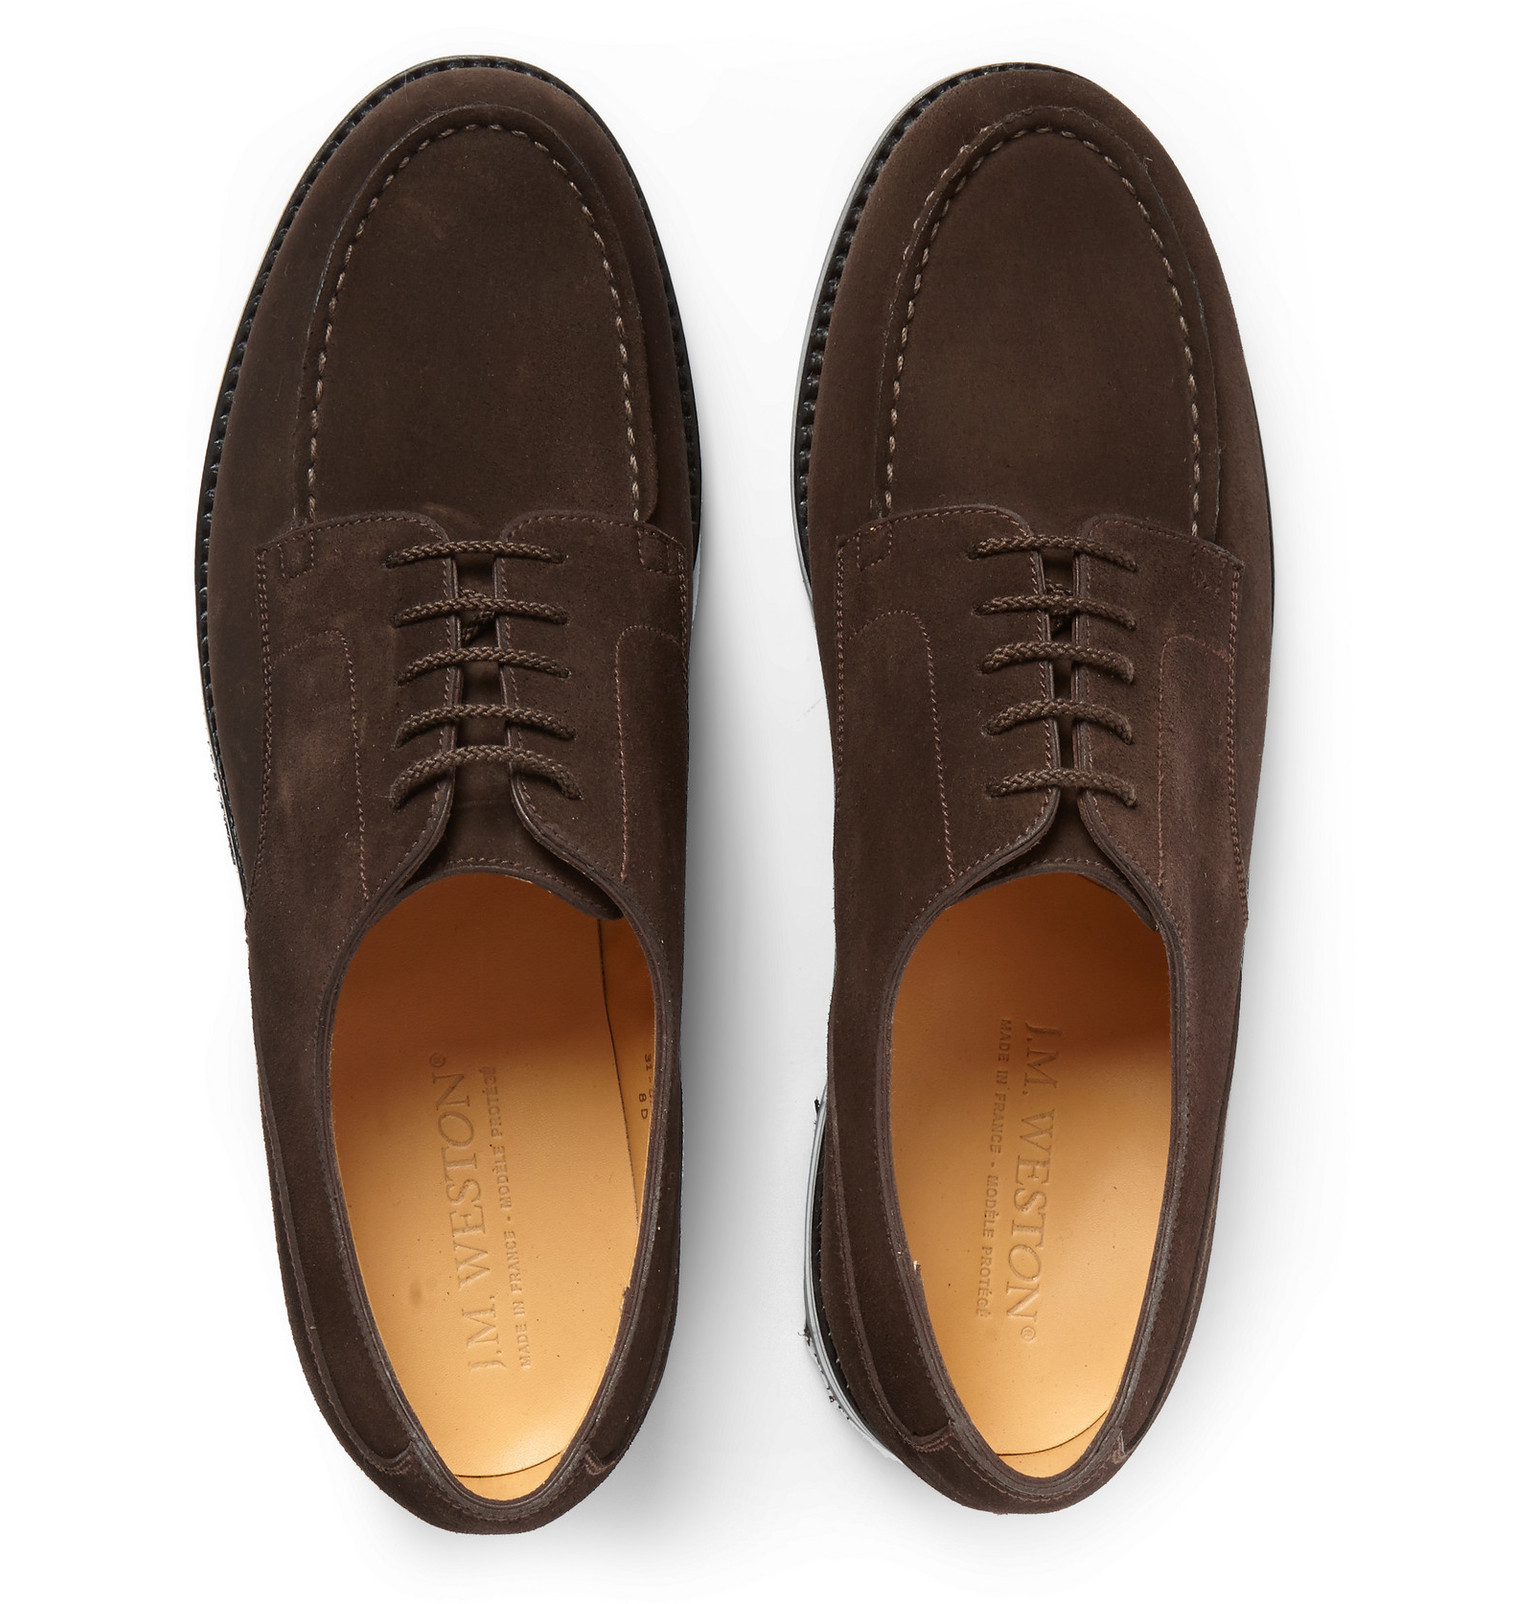 87b85a4a0a8a57 J.M. Weston Goodyear®-welted Suede Derby Shoes in Brown for Men - Lyst